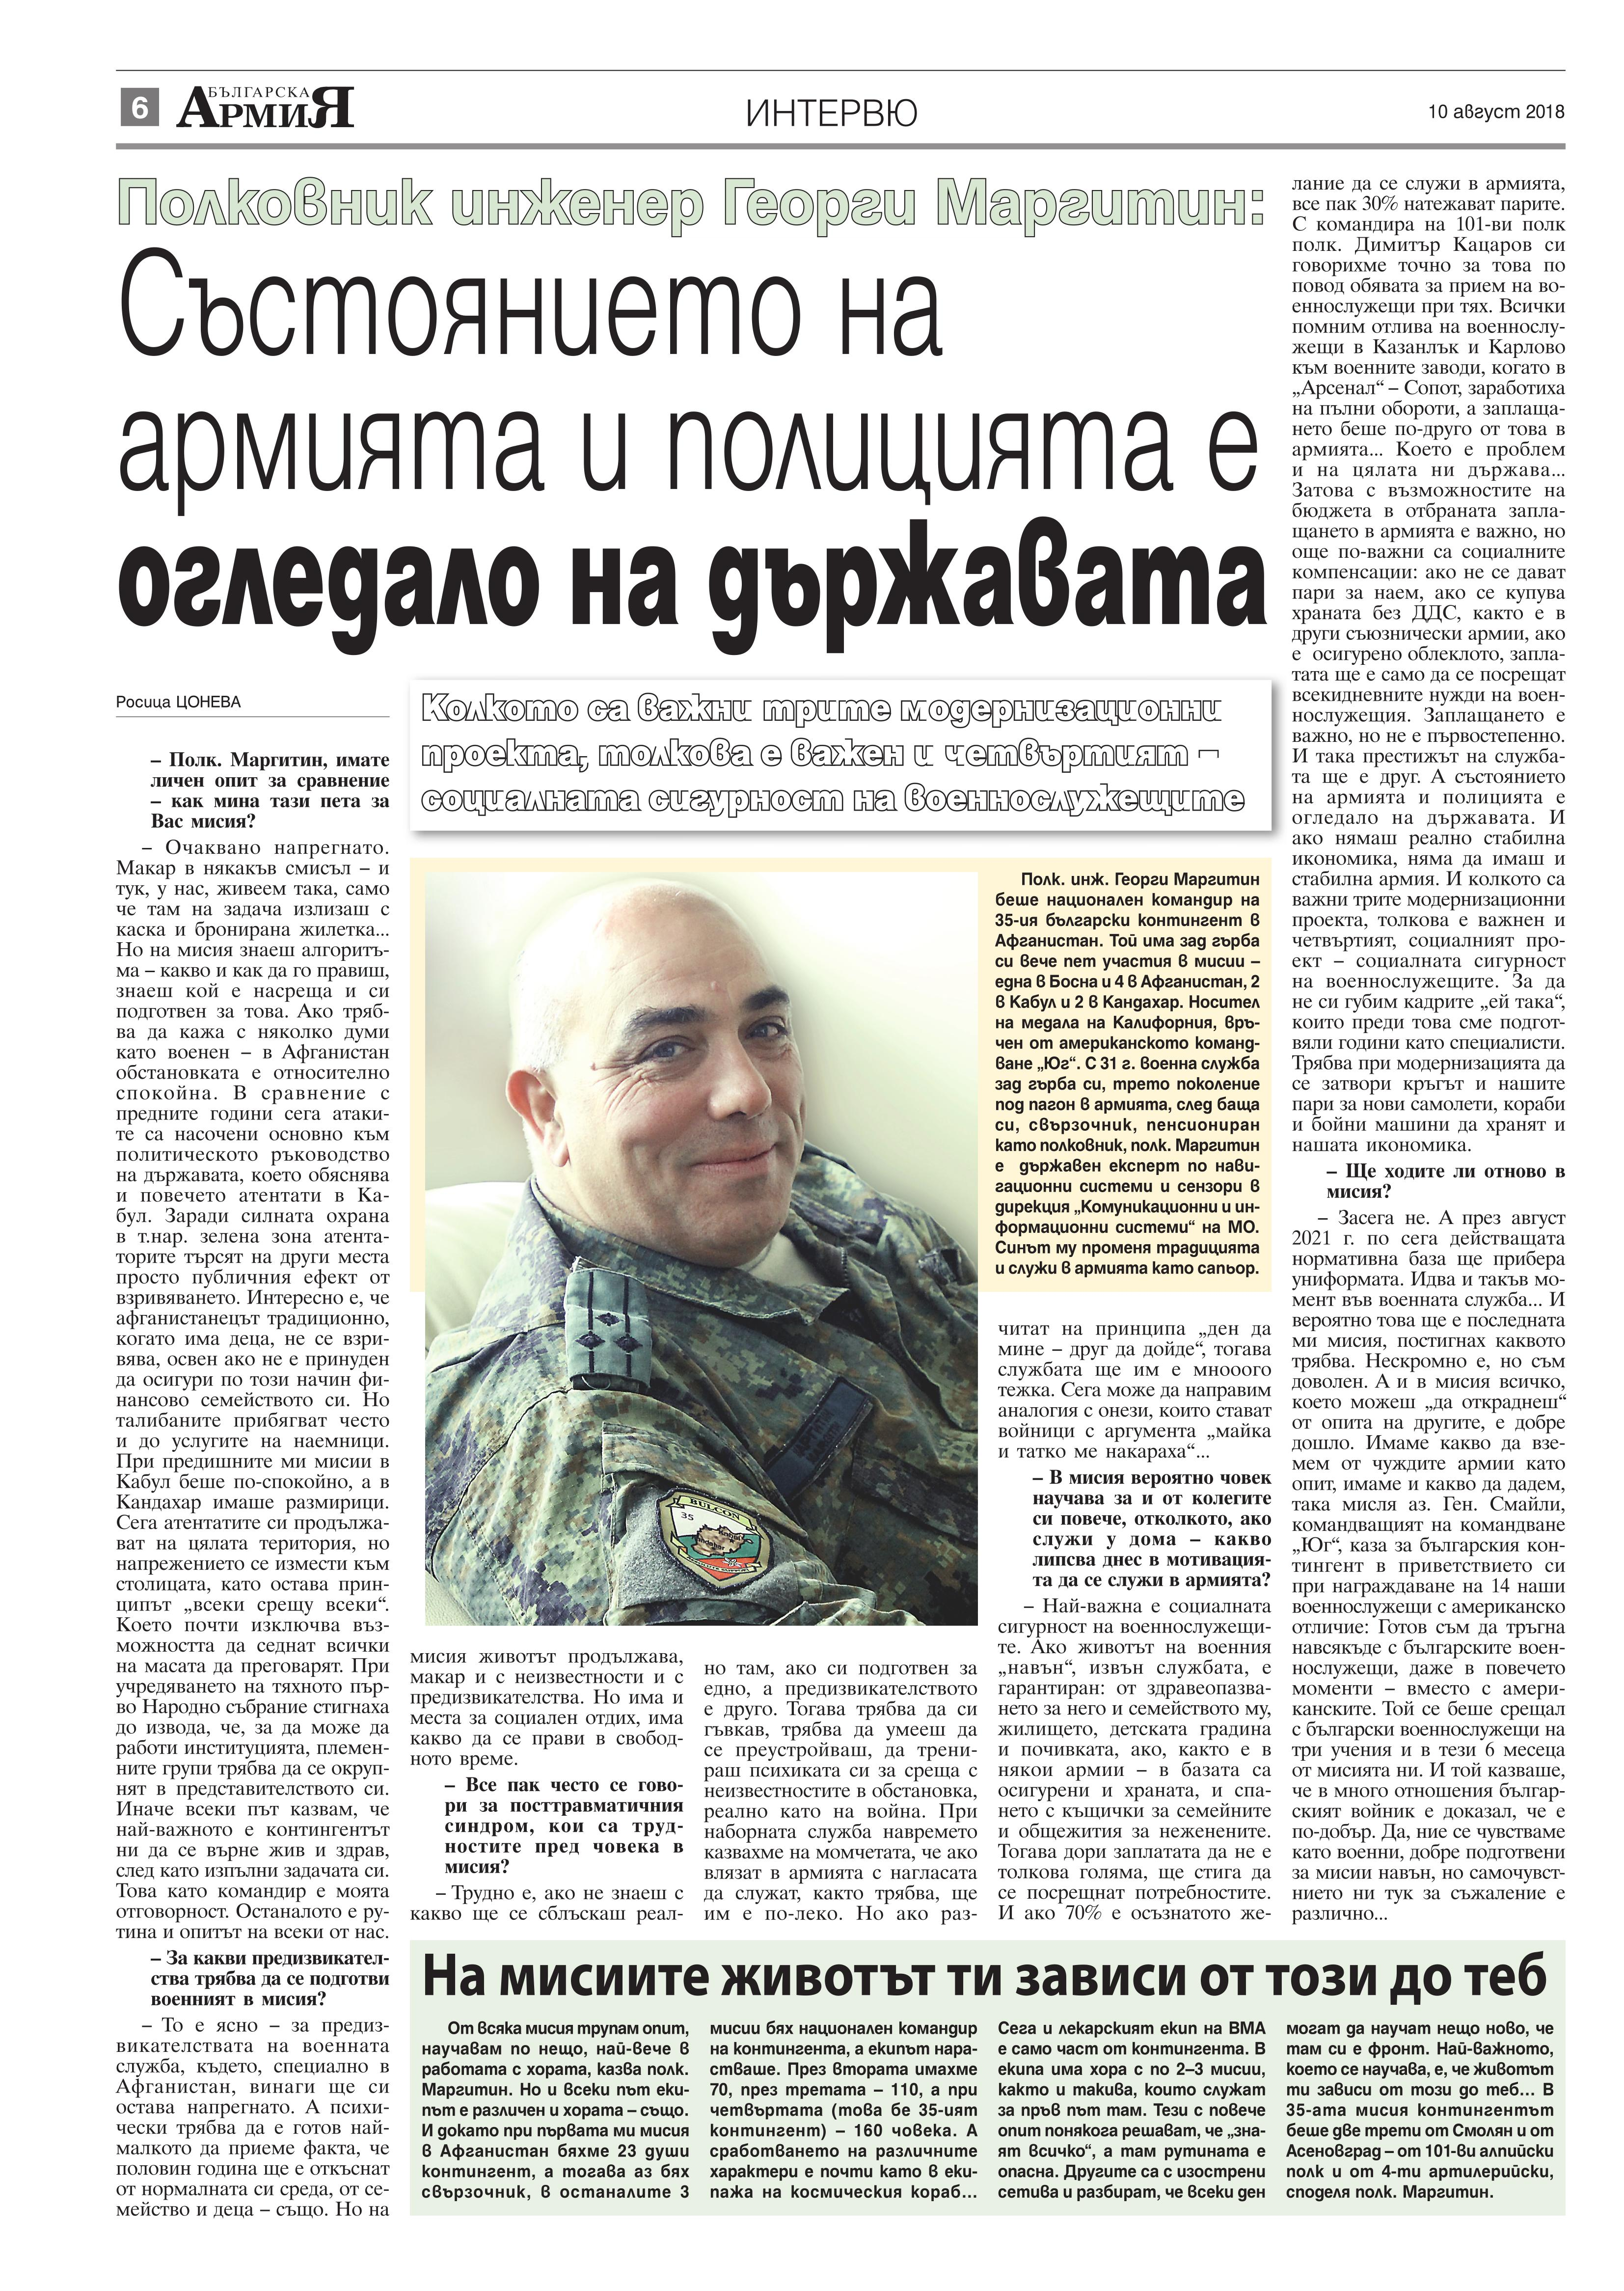 http://armymedia.bg/wp-content/uploads/2015/06/06.page1_-58.jpg